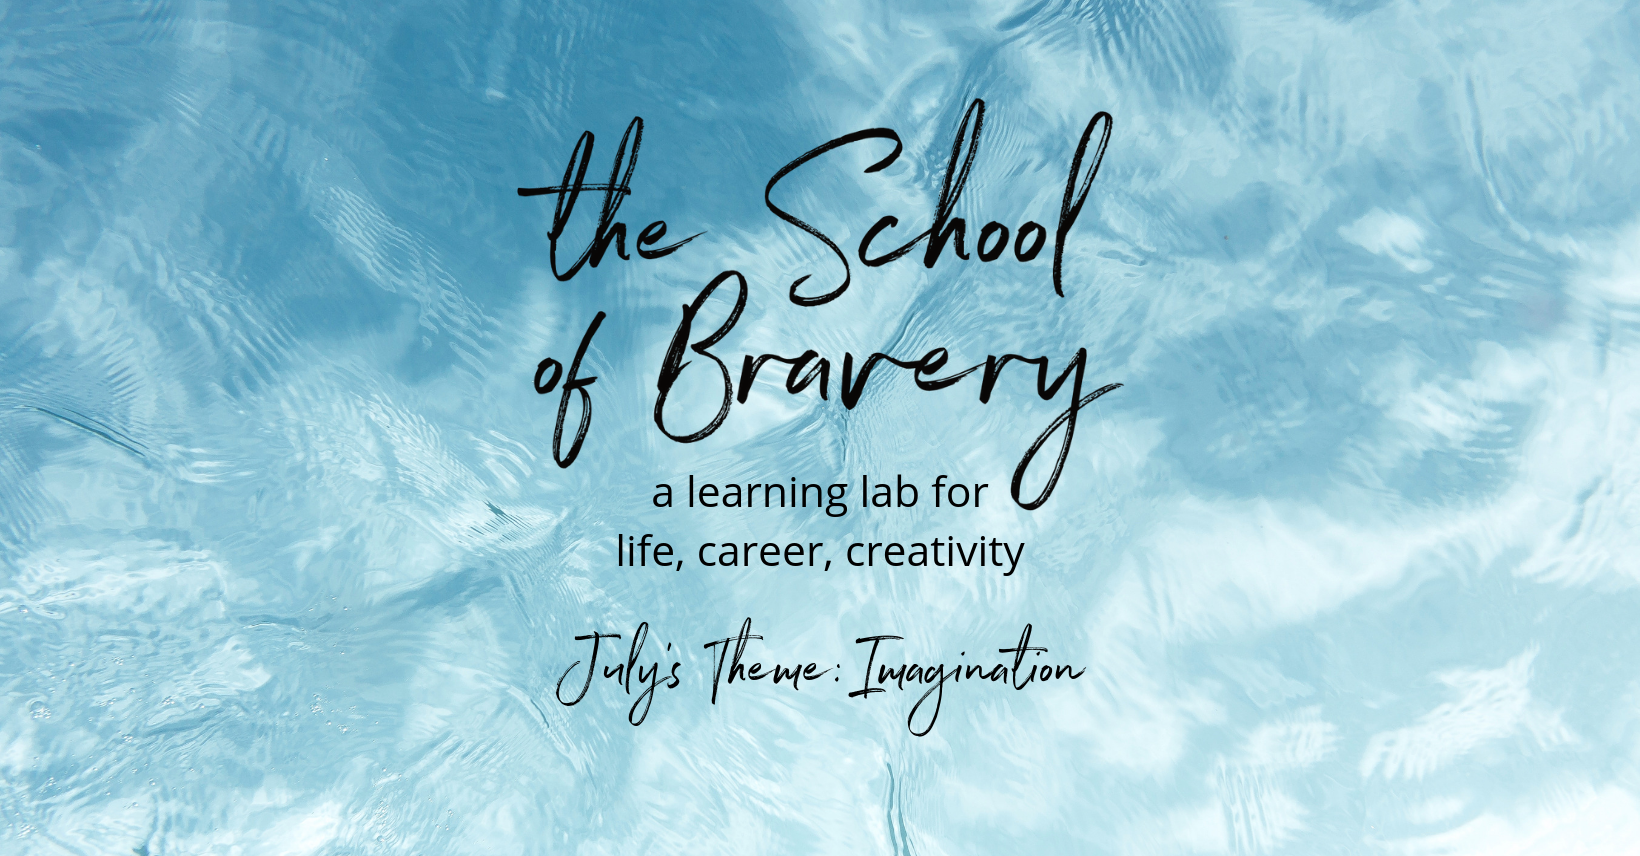 7 - July - FB Cover Image - The School of Bravery.png